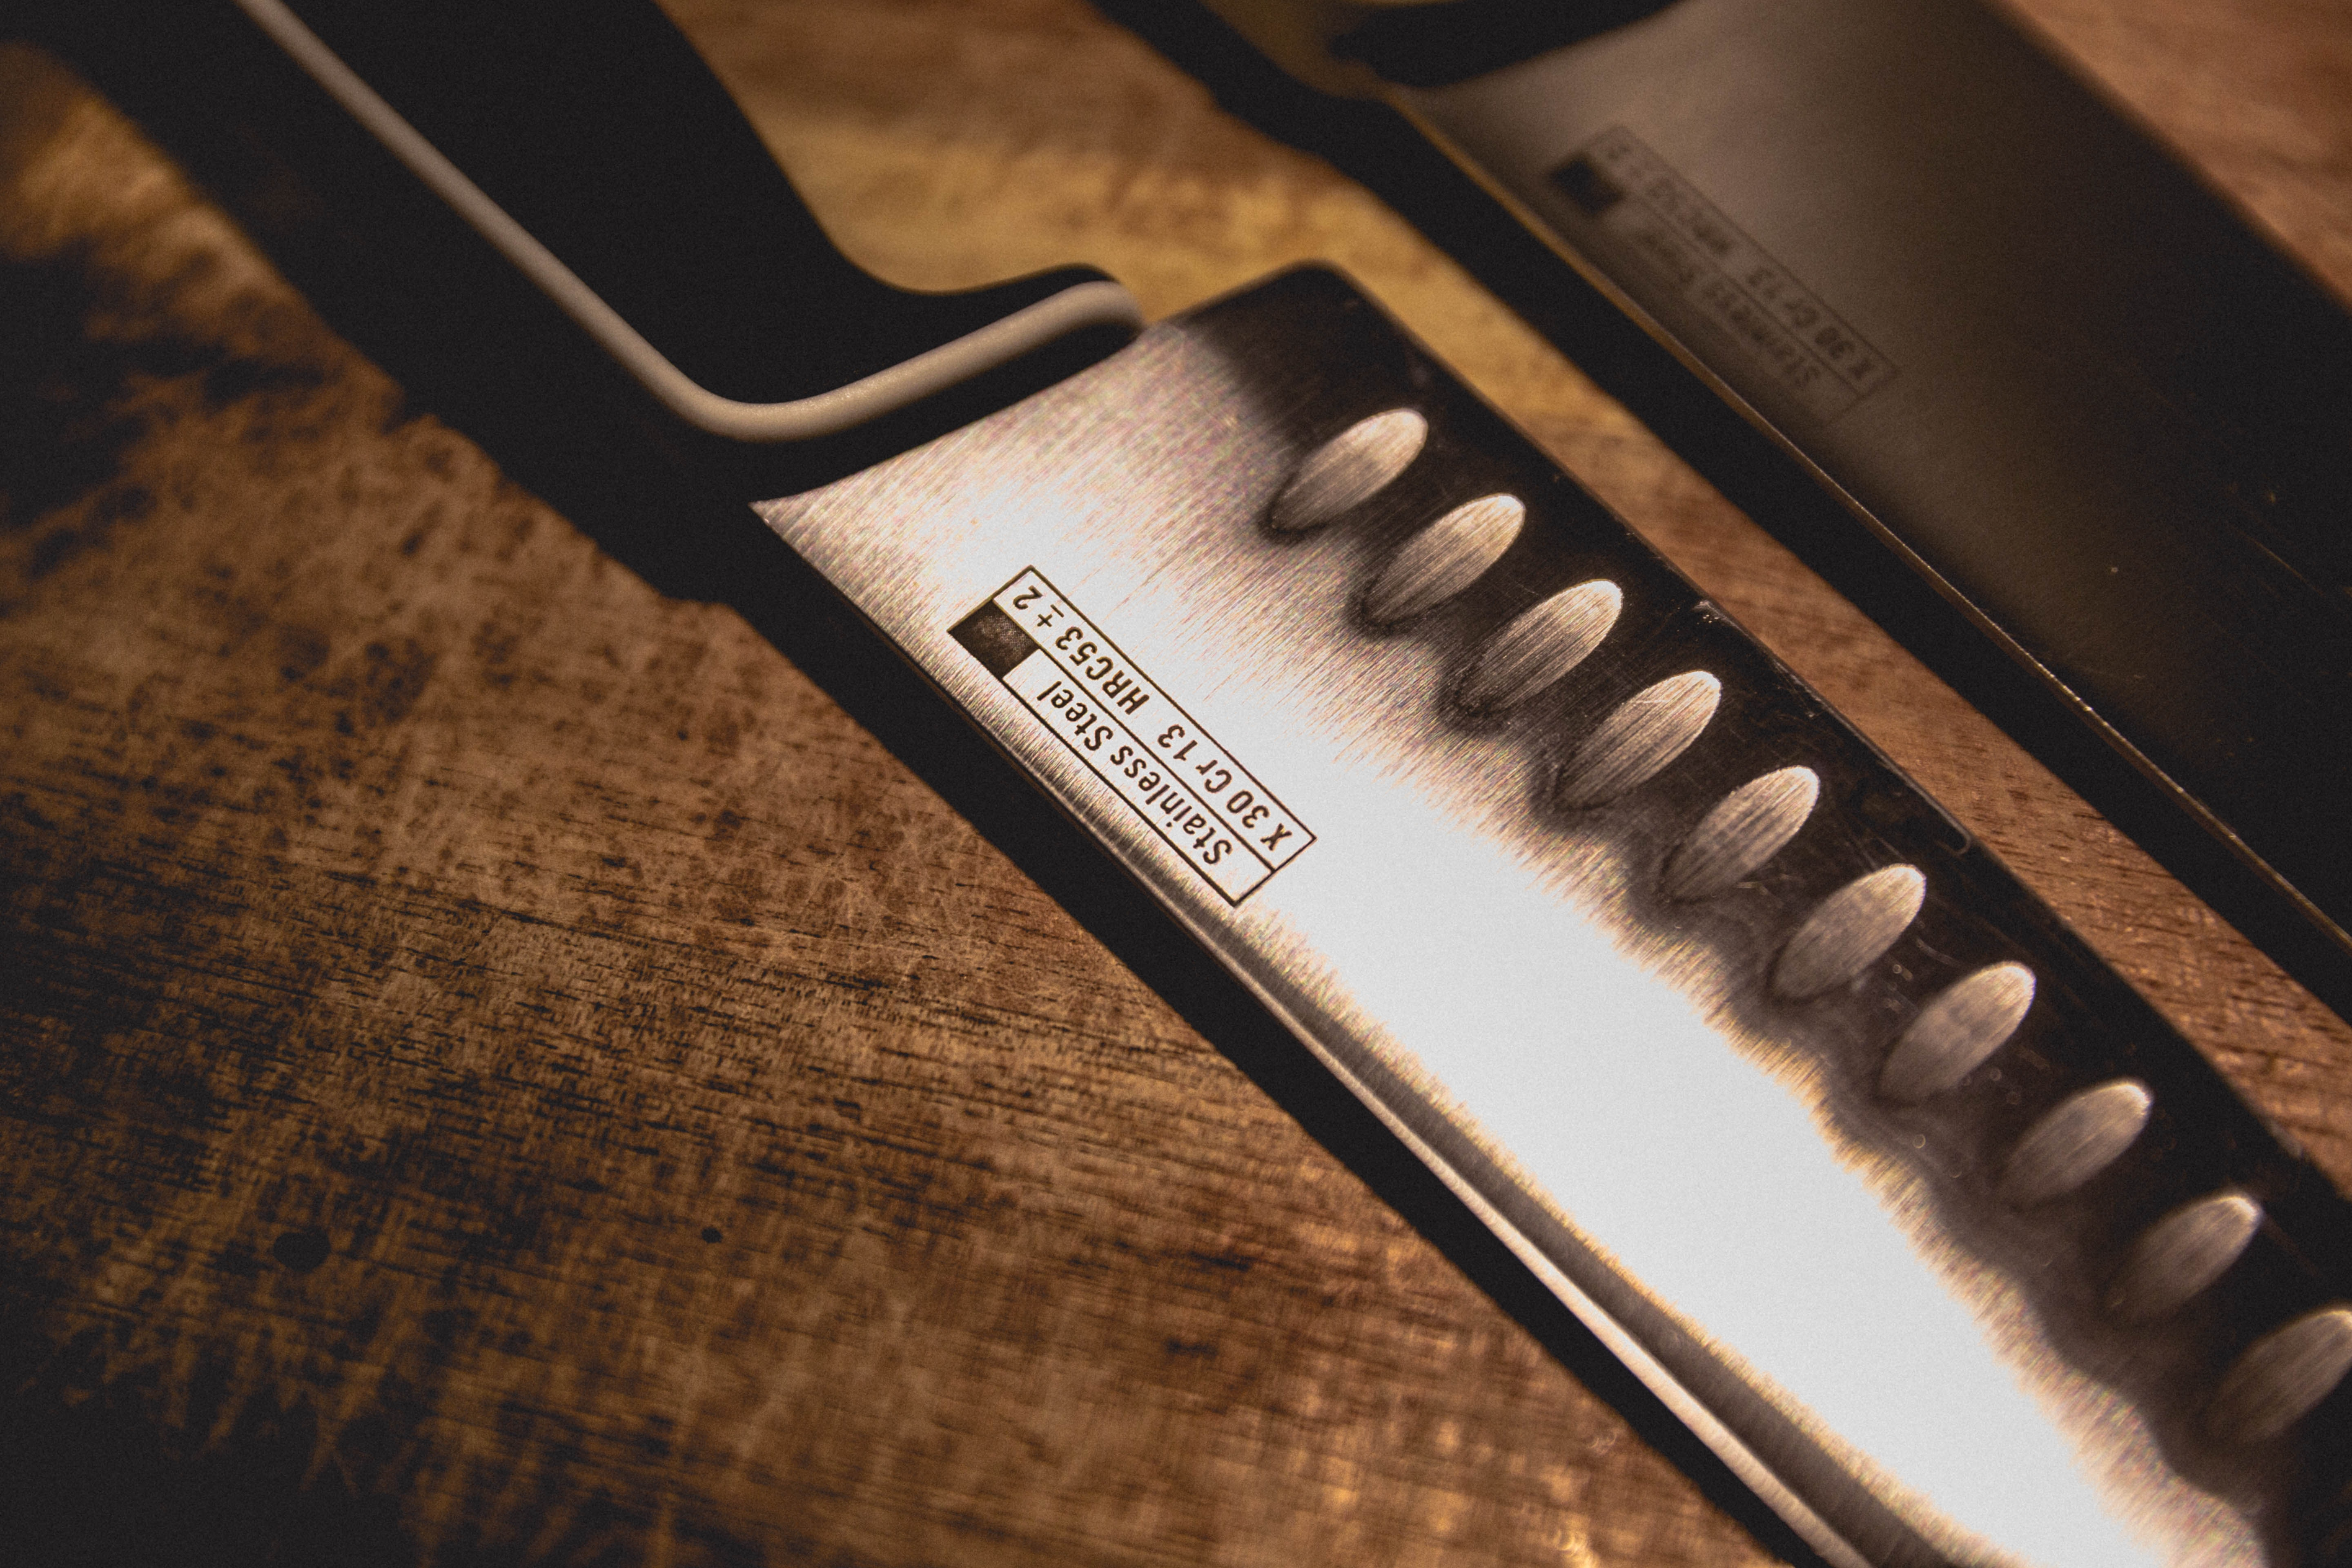 close up of shiny polished kitchen knife